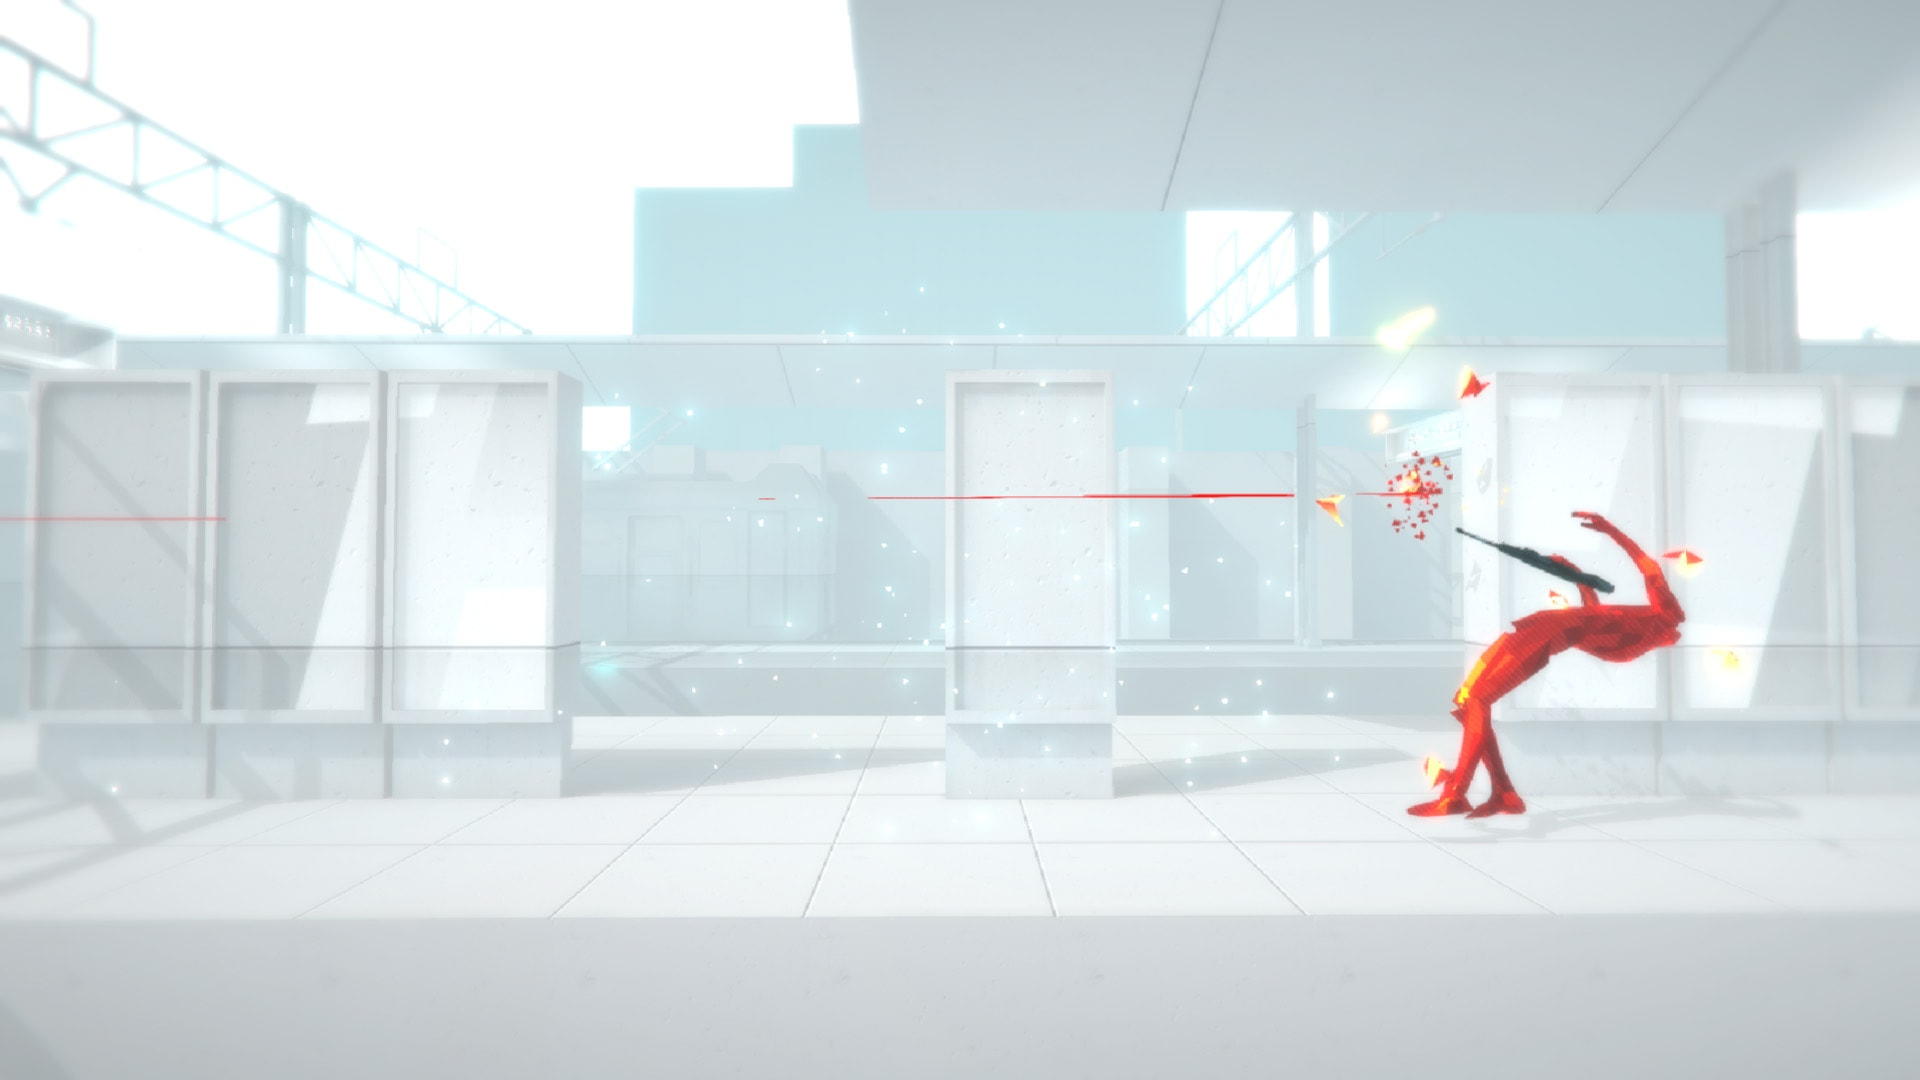 SUPERHOT Desktop wallpapers